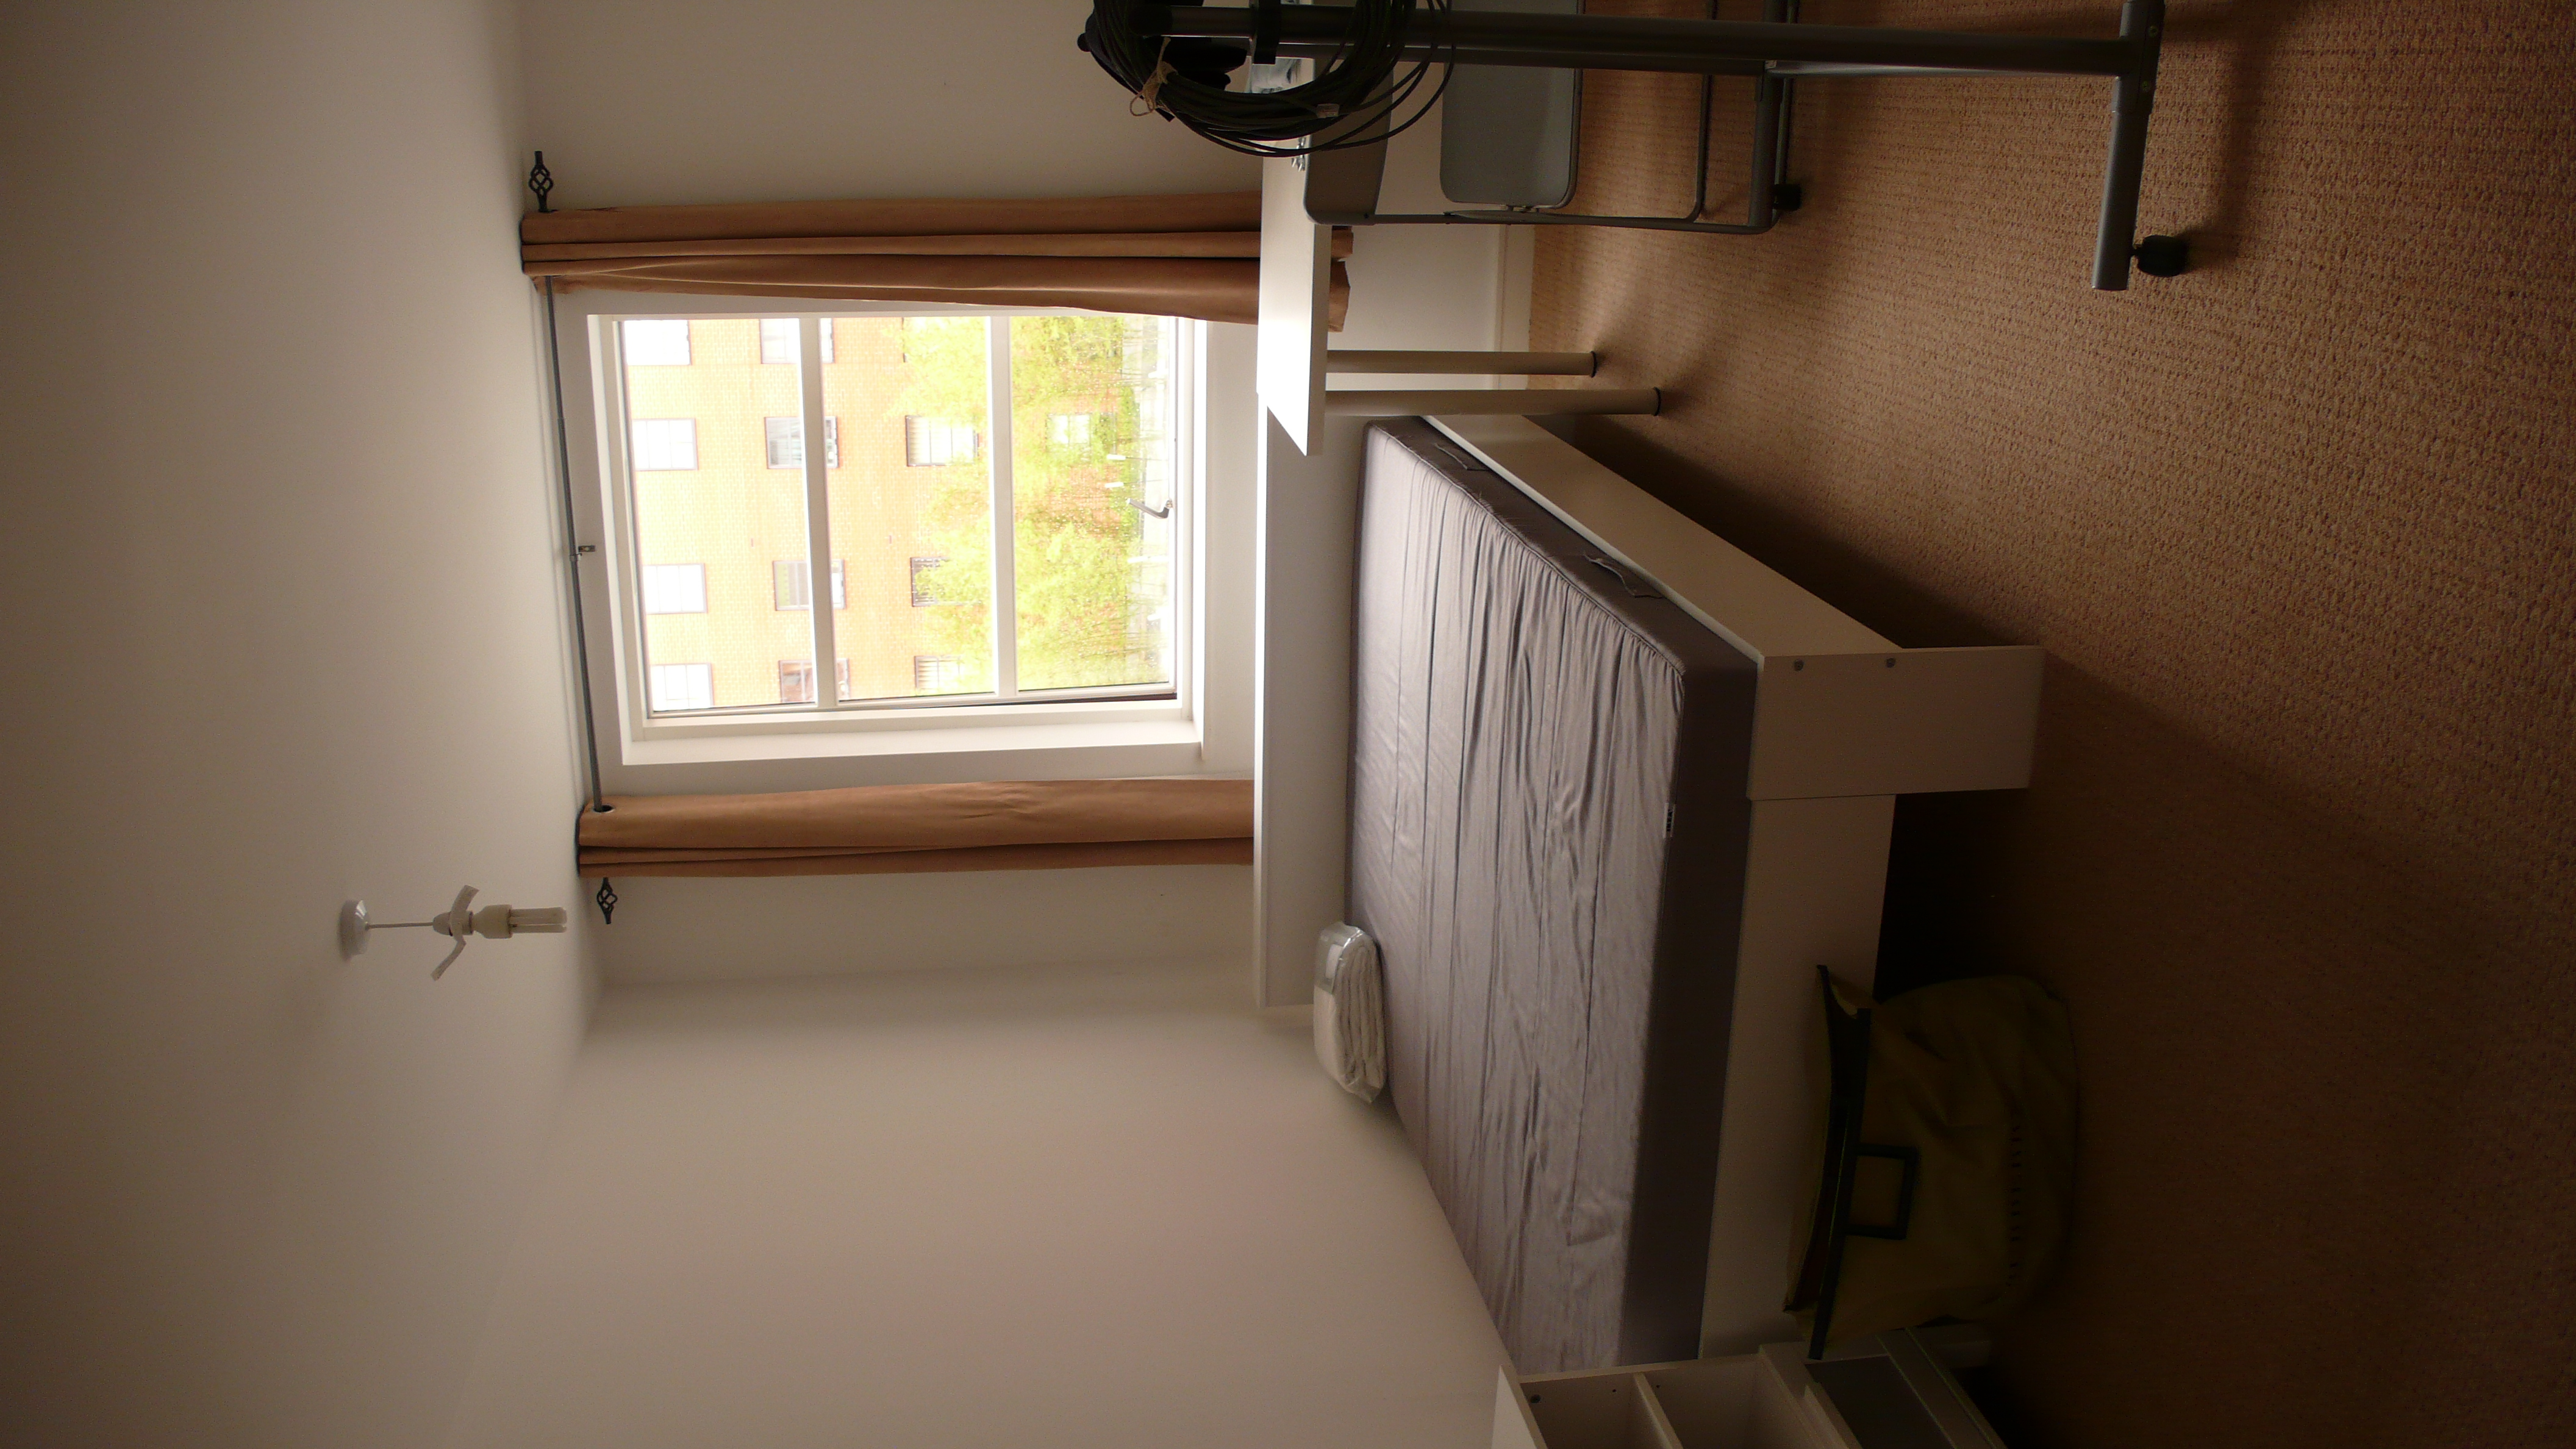 2 Bedroom Accessible Apartment To Rent The Quadrangle Lower Ormond Street Manchester M1 5qd